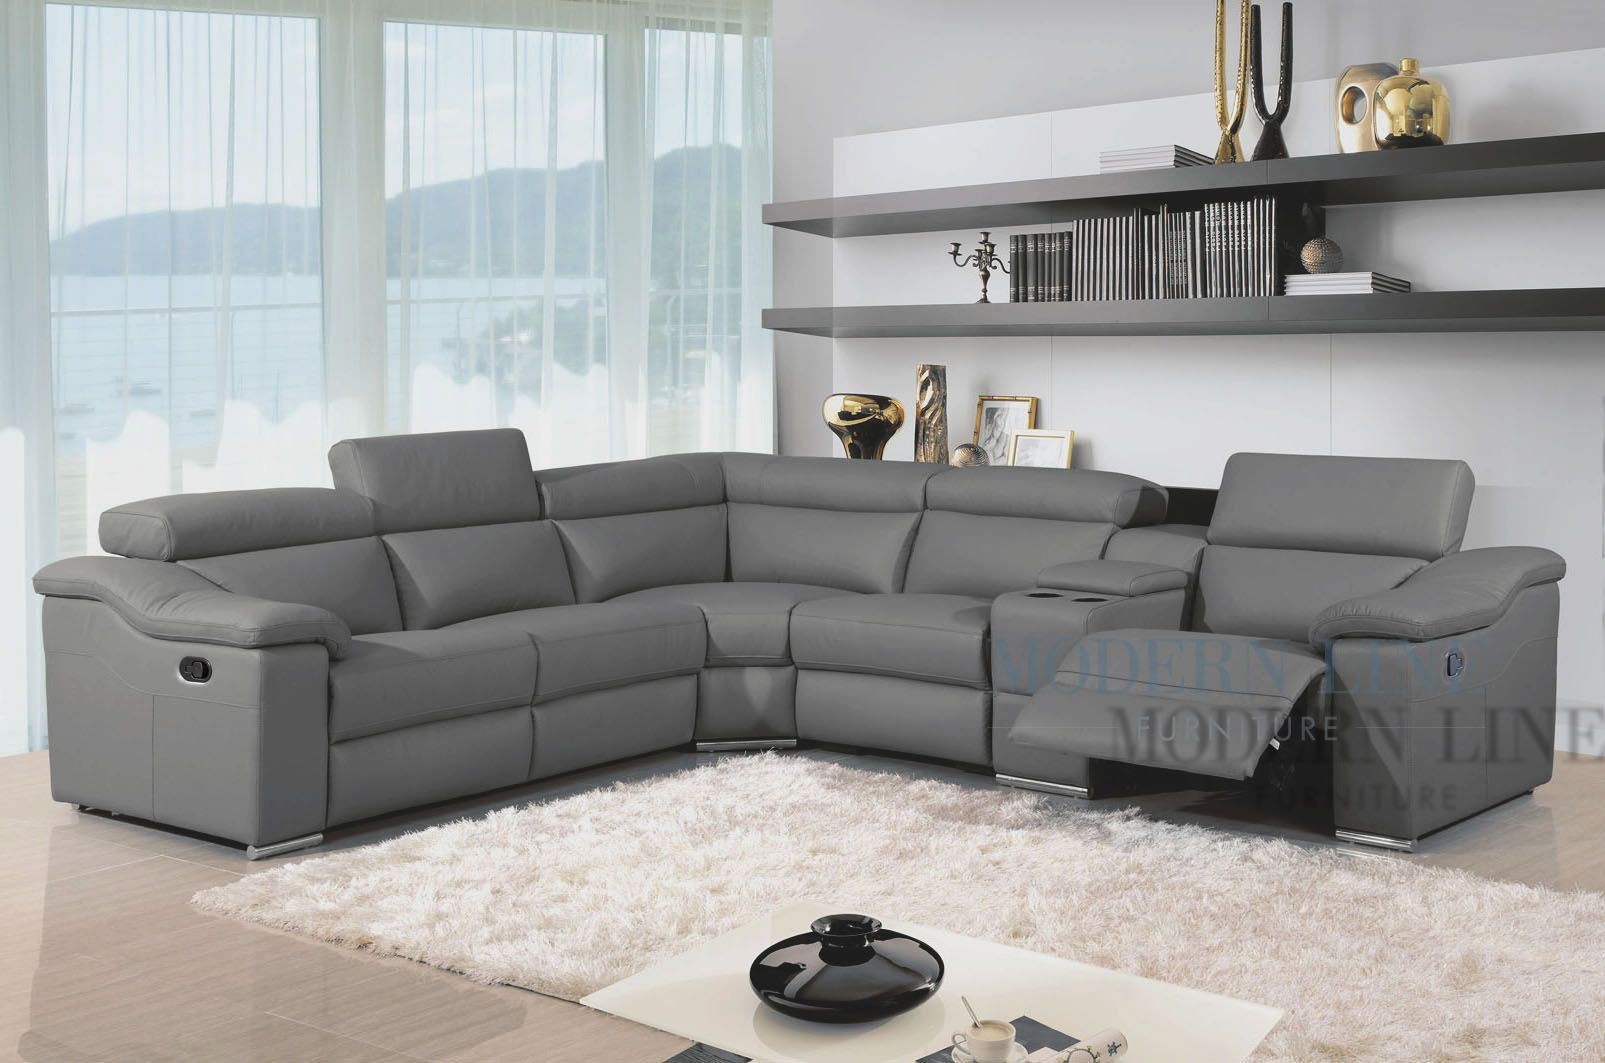 awesome Great Charcoal Grey Sectional Sofa 29 About Remodel Home Design Ideas with Charcoal Grey Sectional : gray modern sectional - Sectionals, Sofas & Couches